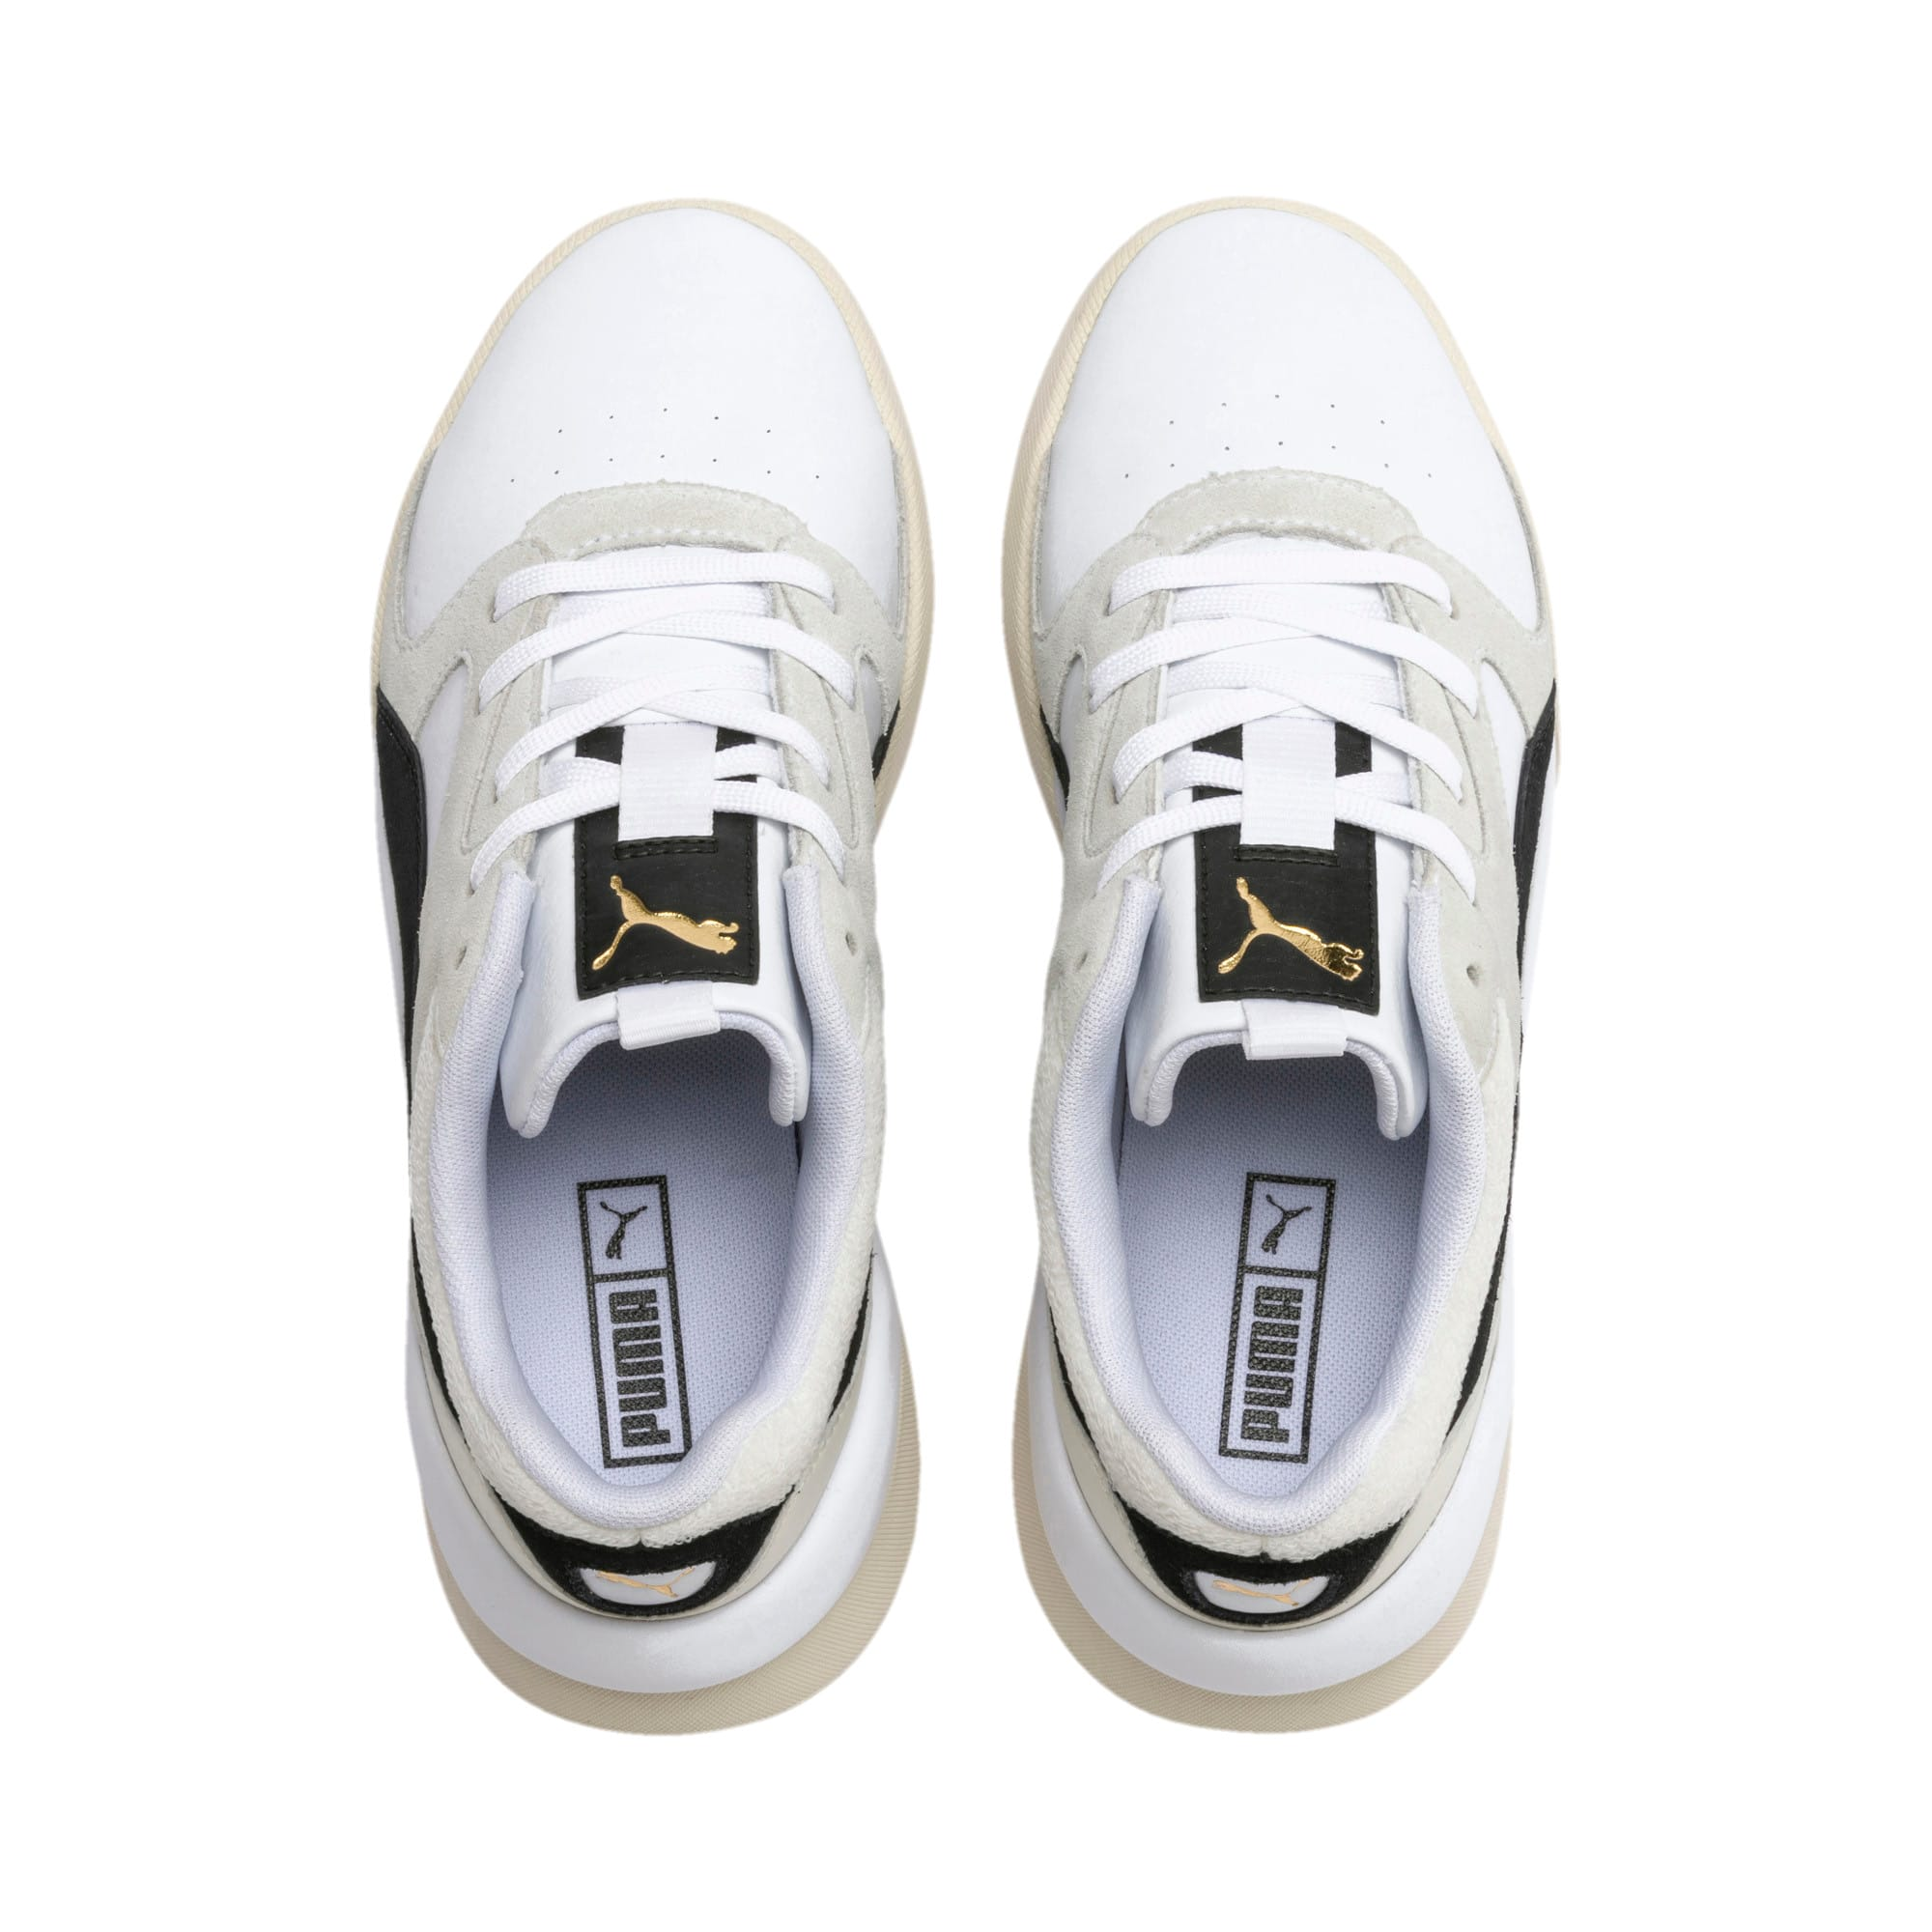 Thumbnail 7 of Aeon Heritage Women's Sneakers, Puma White-Puma Black, medium